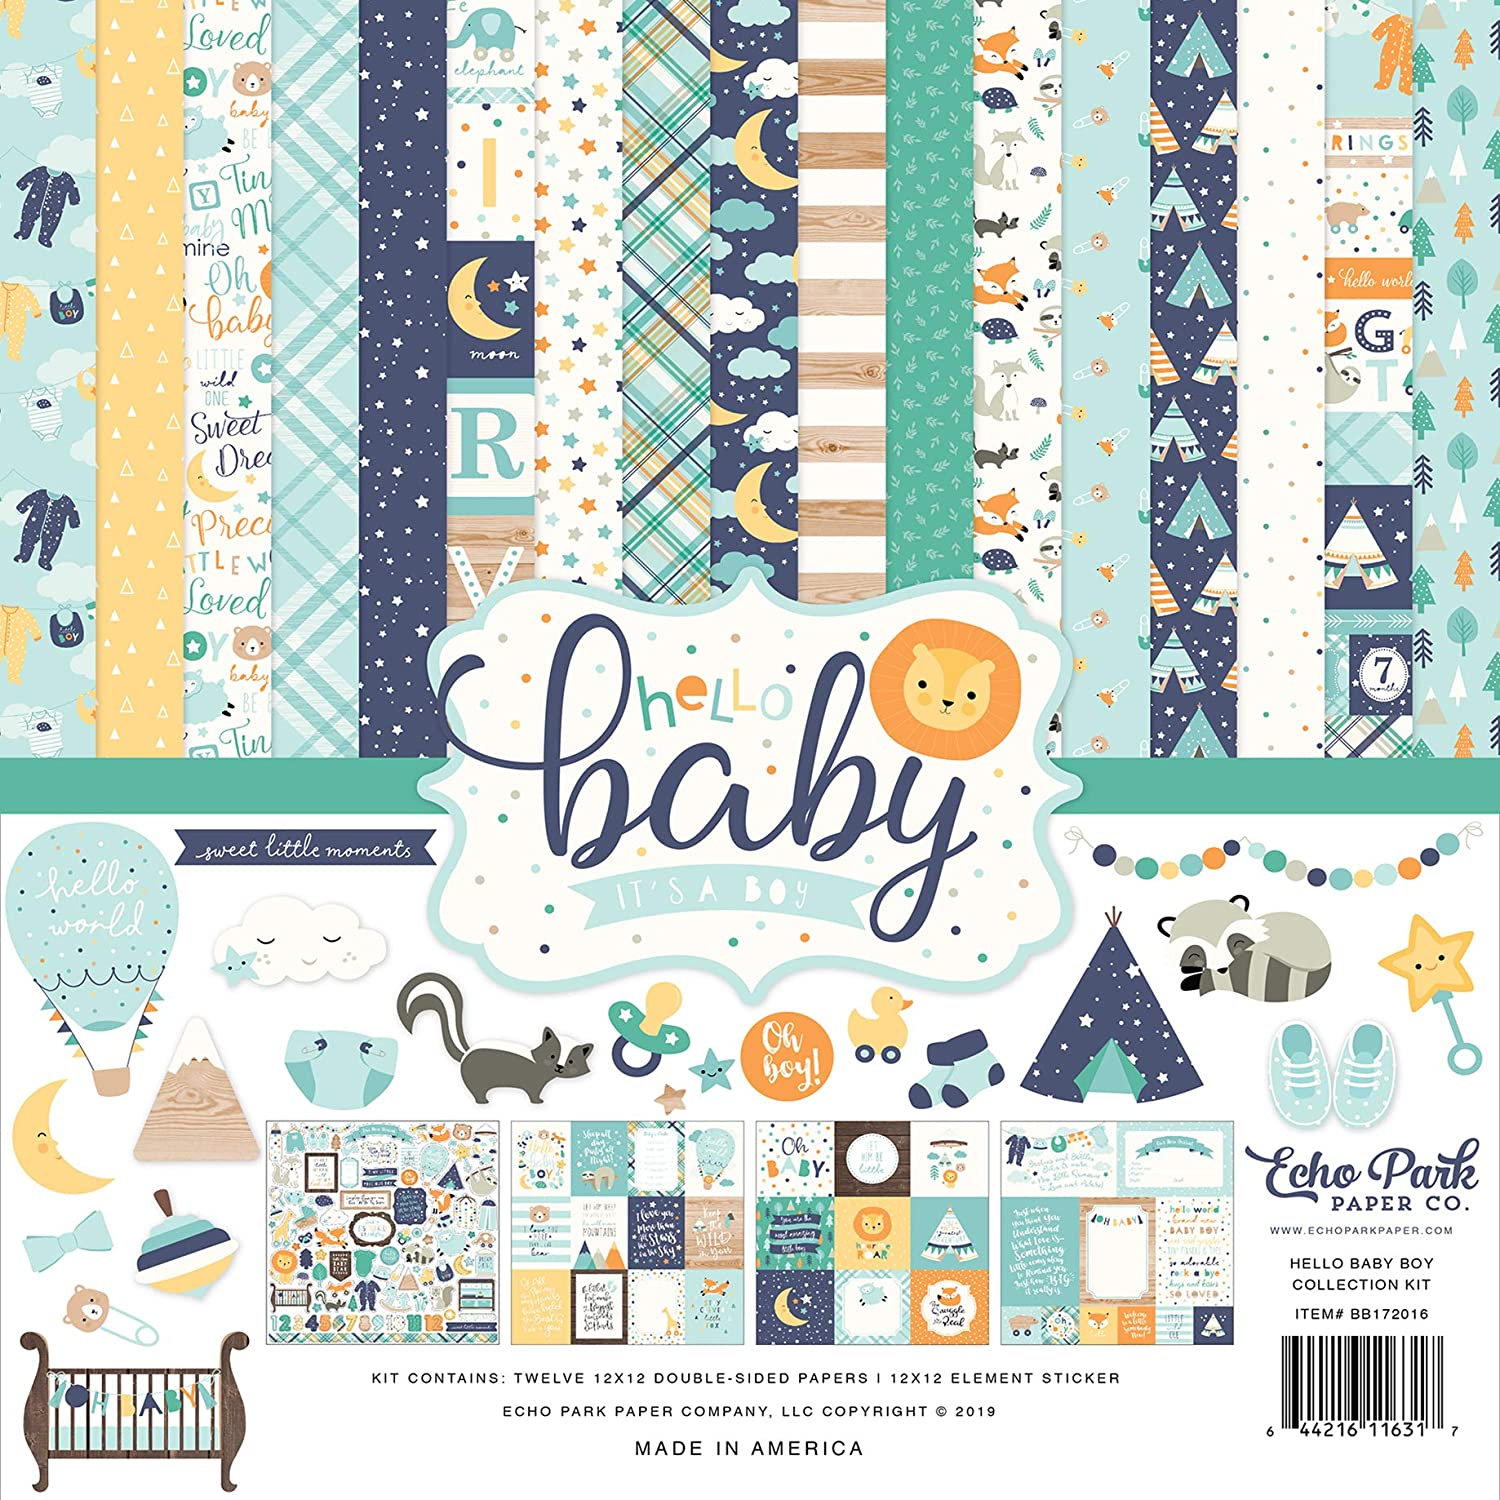 Teal Echo Park Paper Company BB172016A Hello Baby Boy Collection Kit Paper Blue Yellow Green